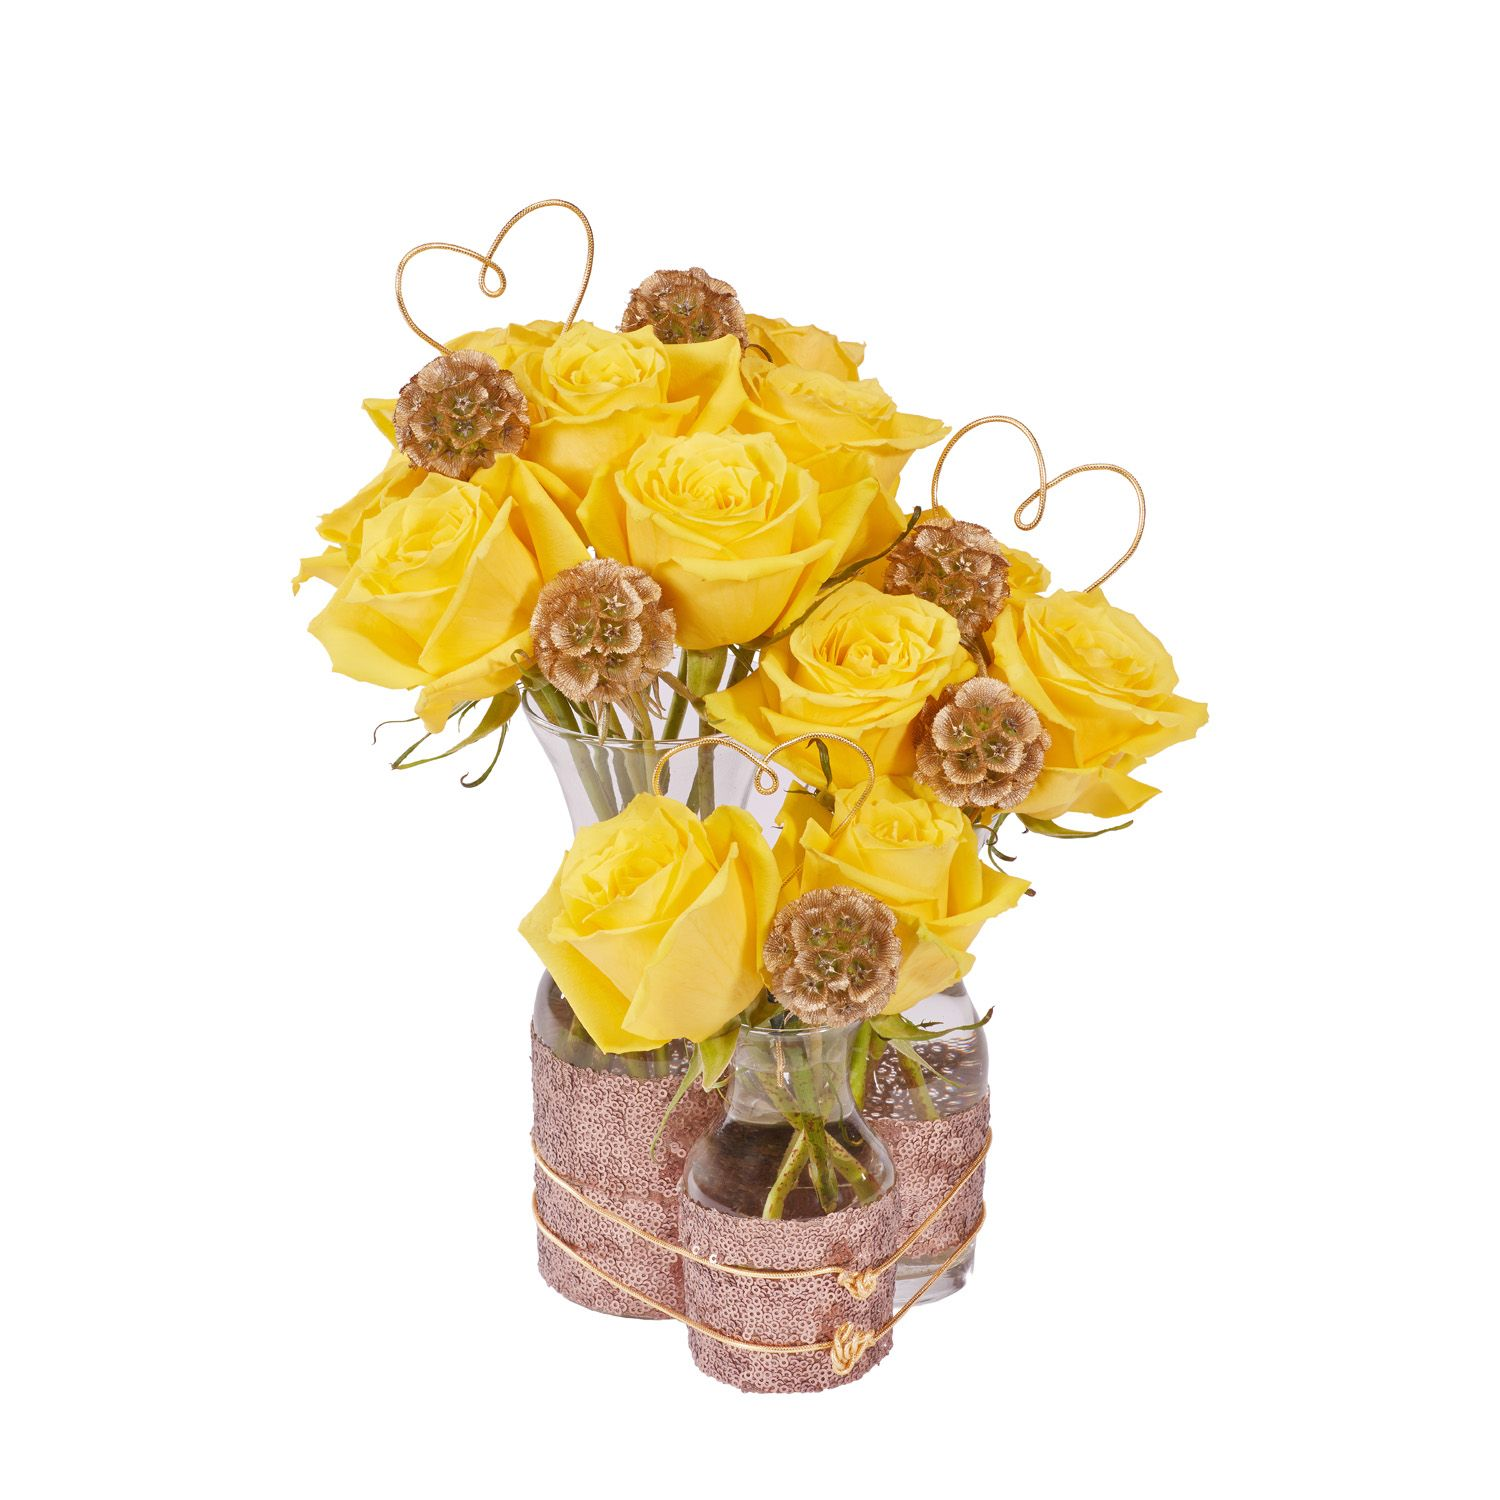 By Adding Accents To A Simple Vase You Can Create